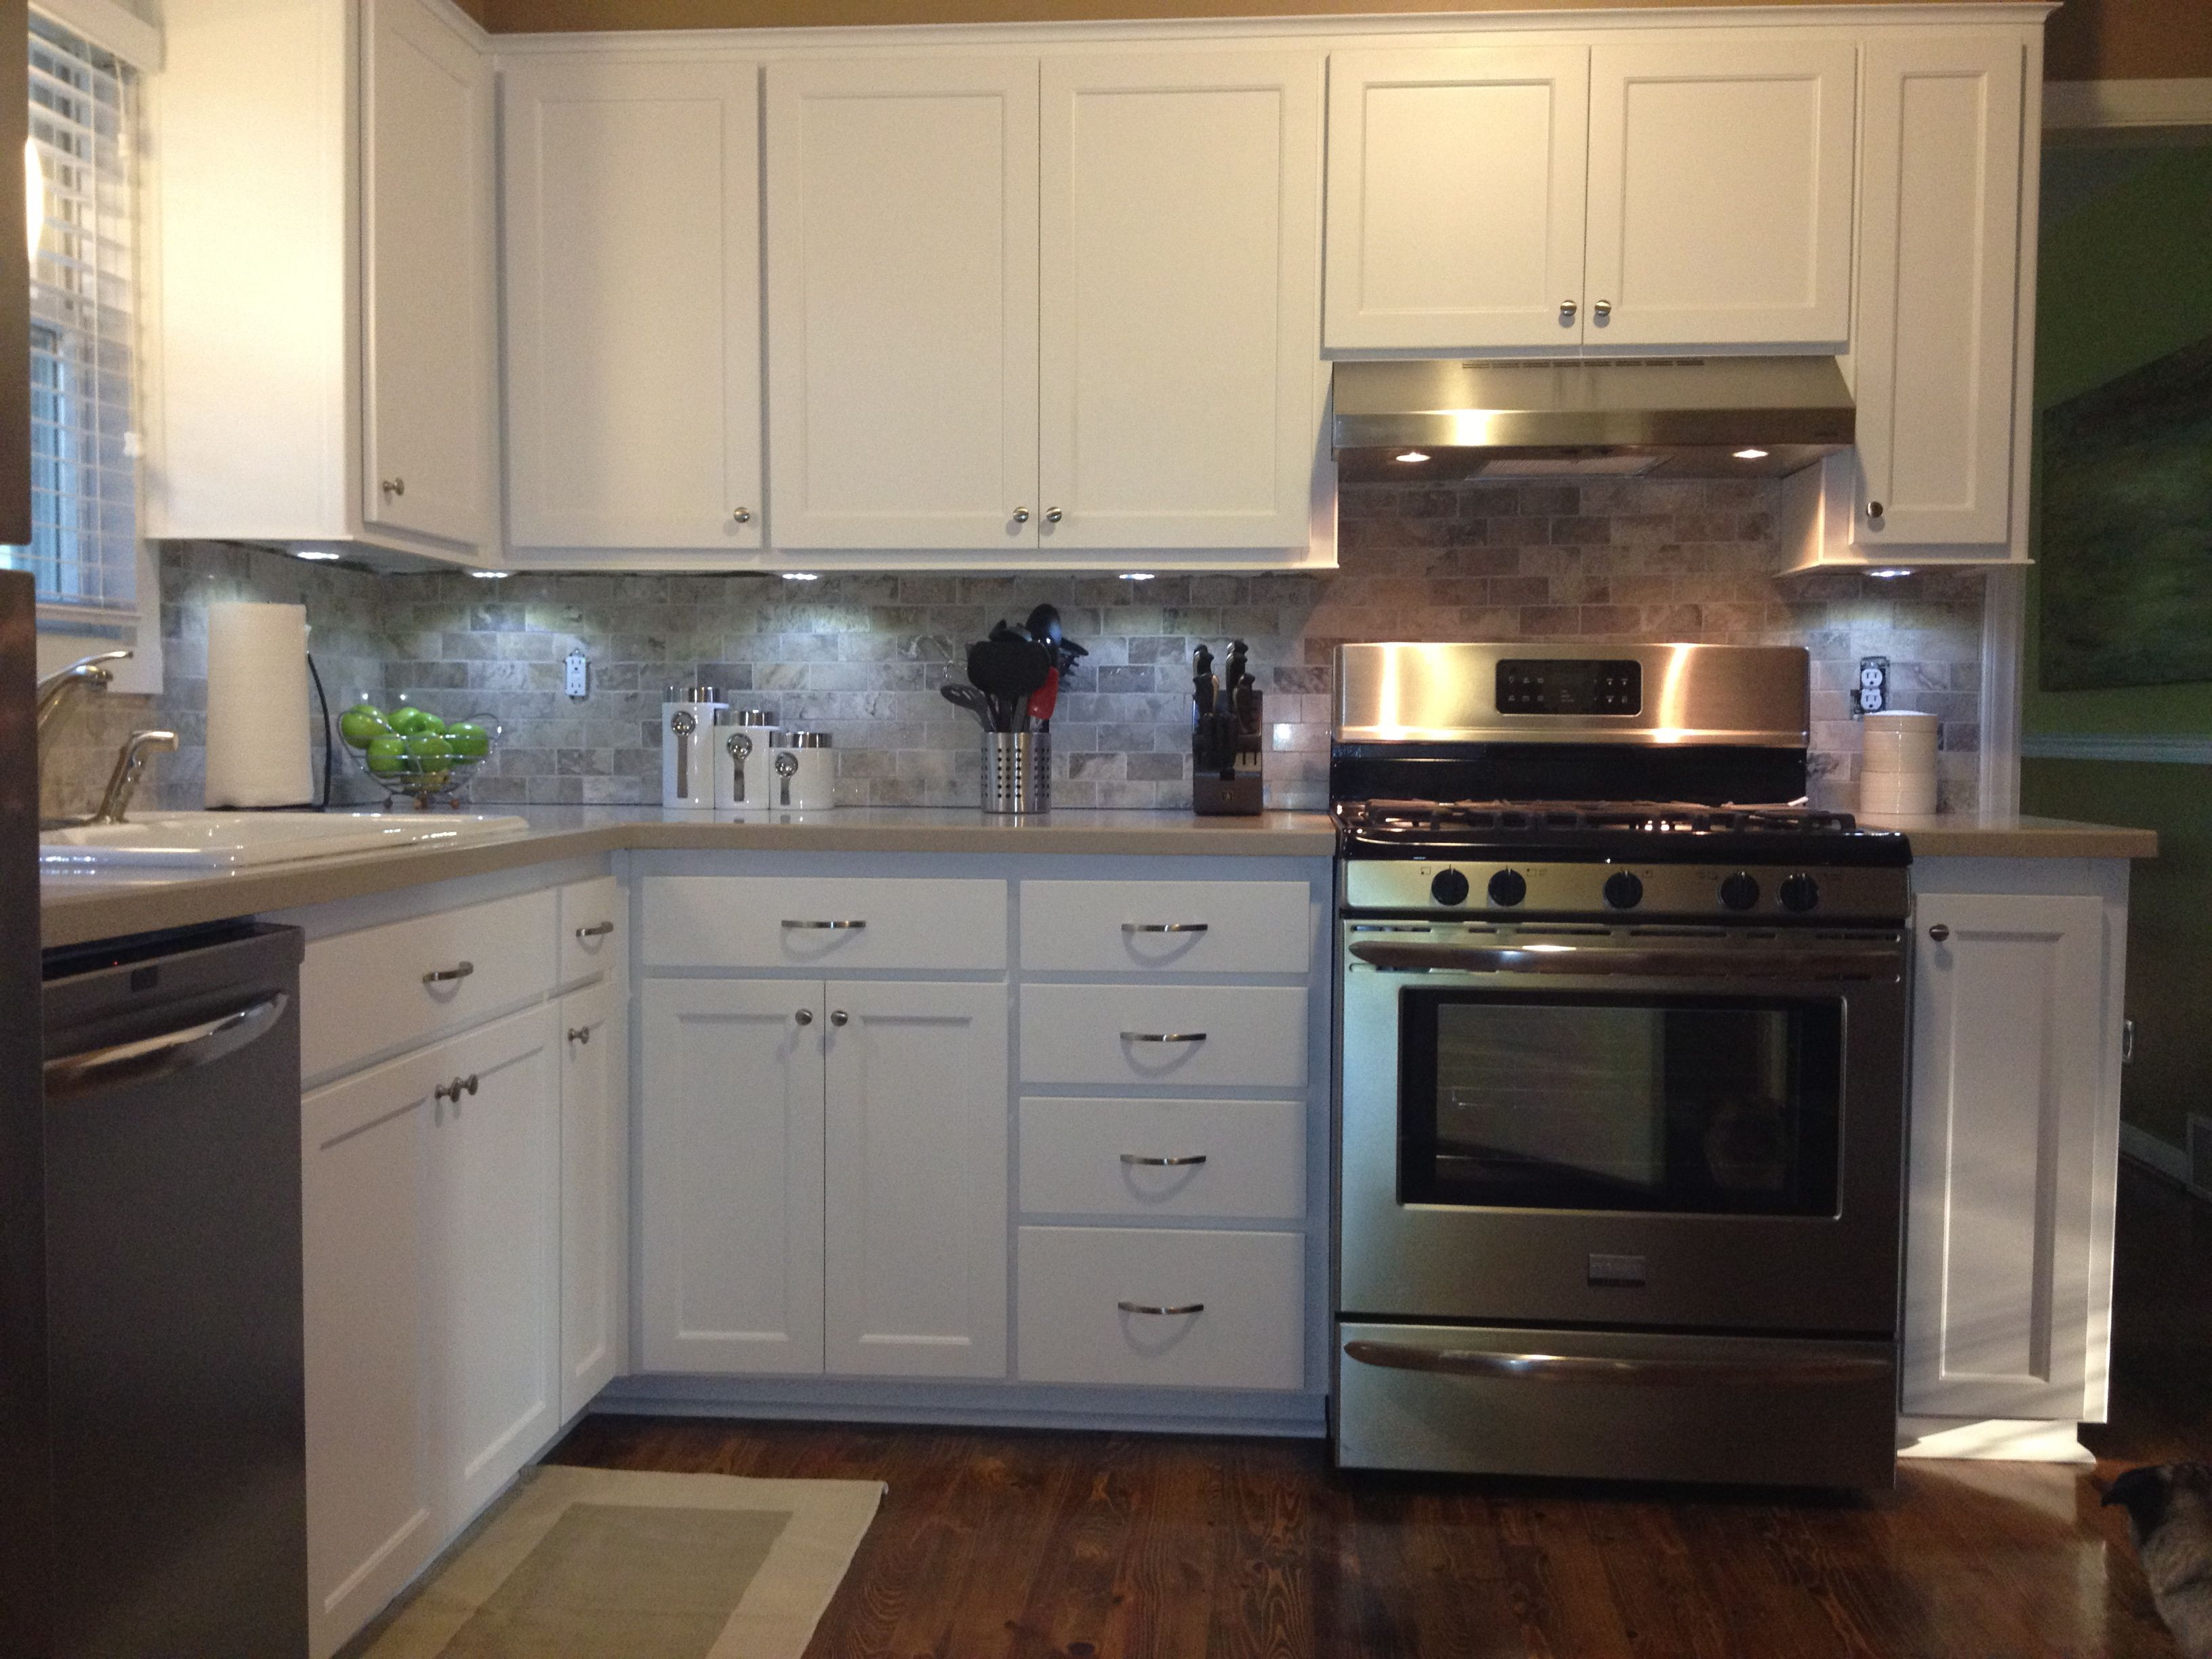 1000+ images about kitchen ideas on Pinterest | L shaped kitchen ...